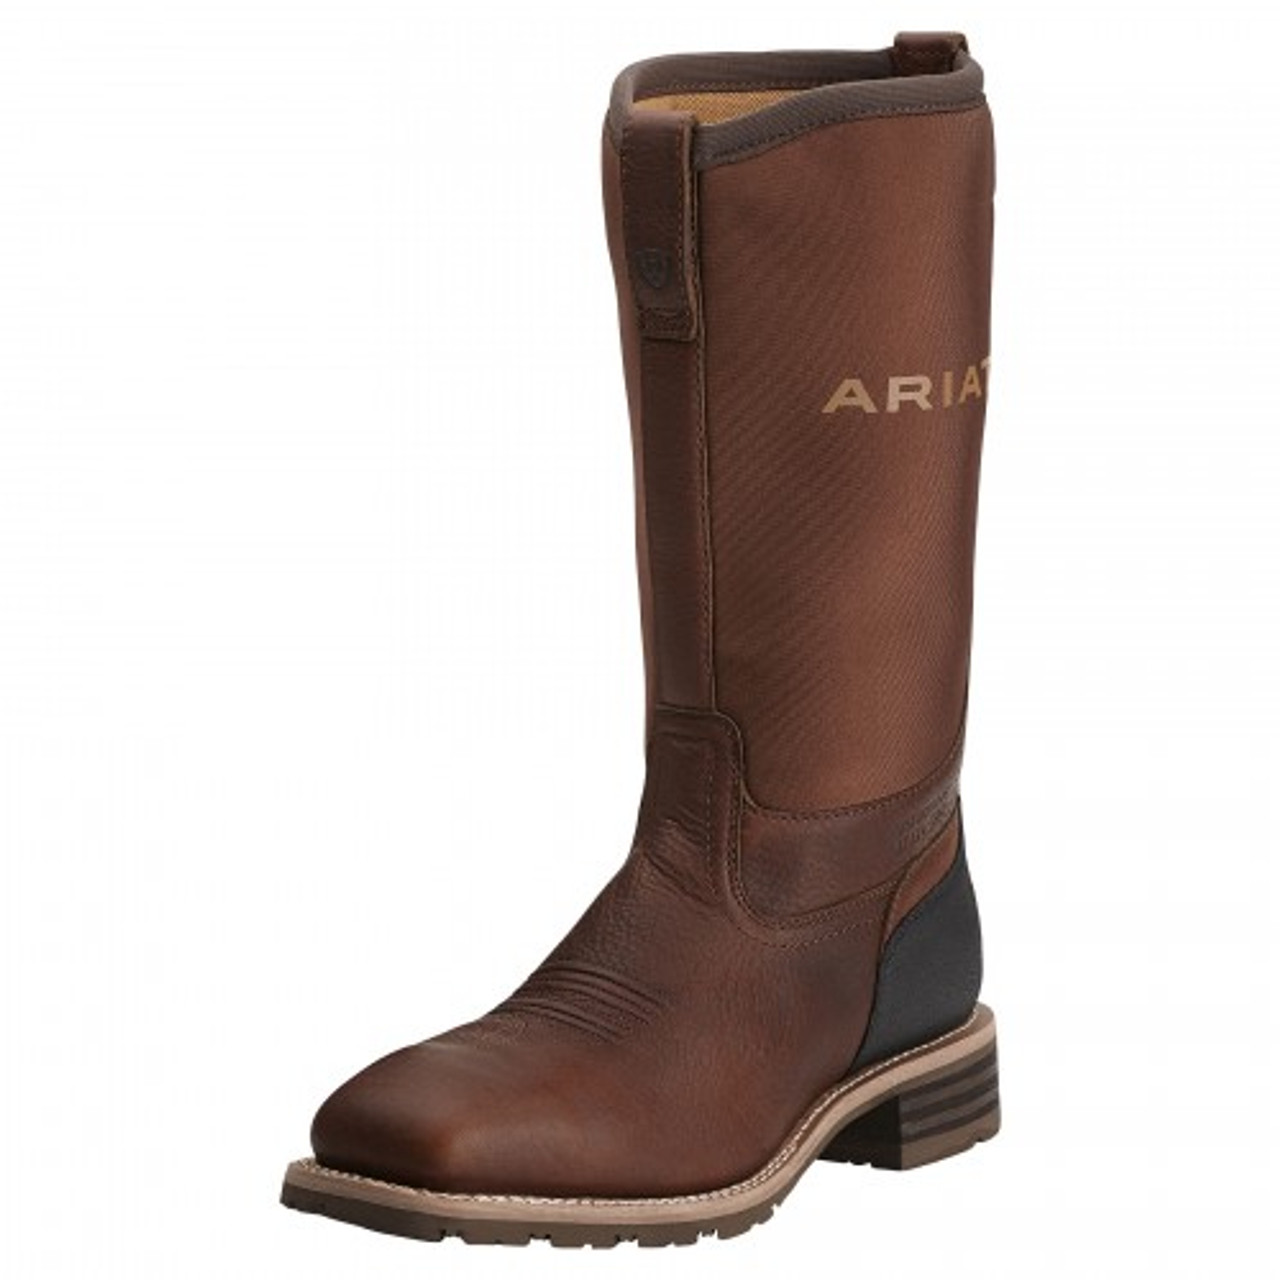 6ba7ead7bc5 Ariat Men's Hybrid All Weather - Oiled Brown w/ Steel Toe